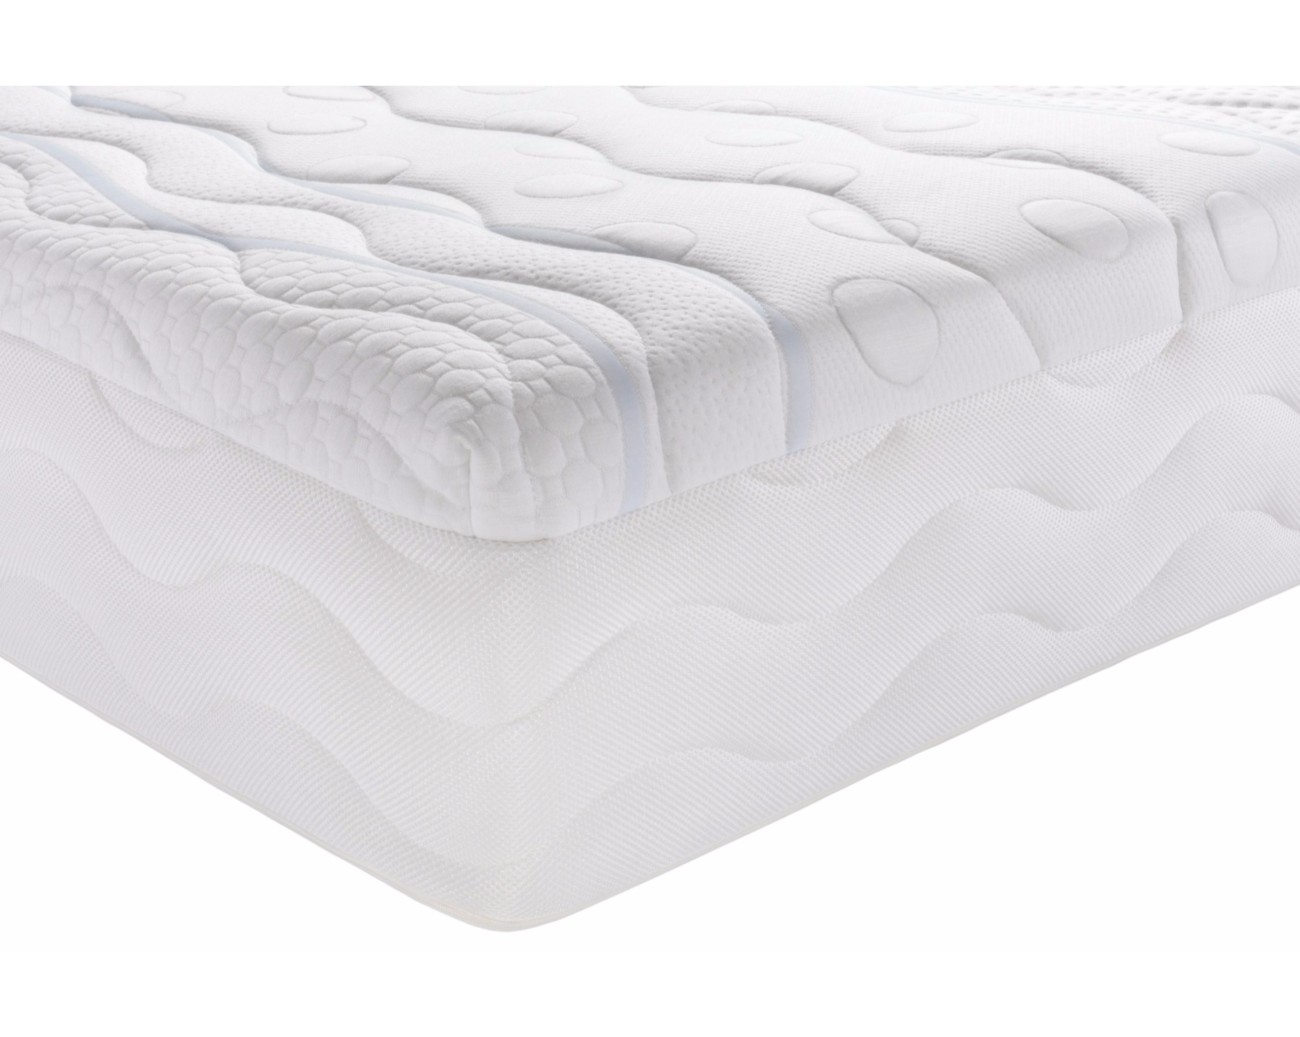 thumb_relyon_pocket_serenade_1550_mattress_corner_cutout_relyon_2014